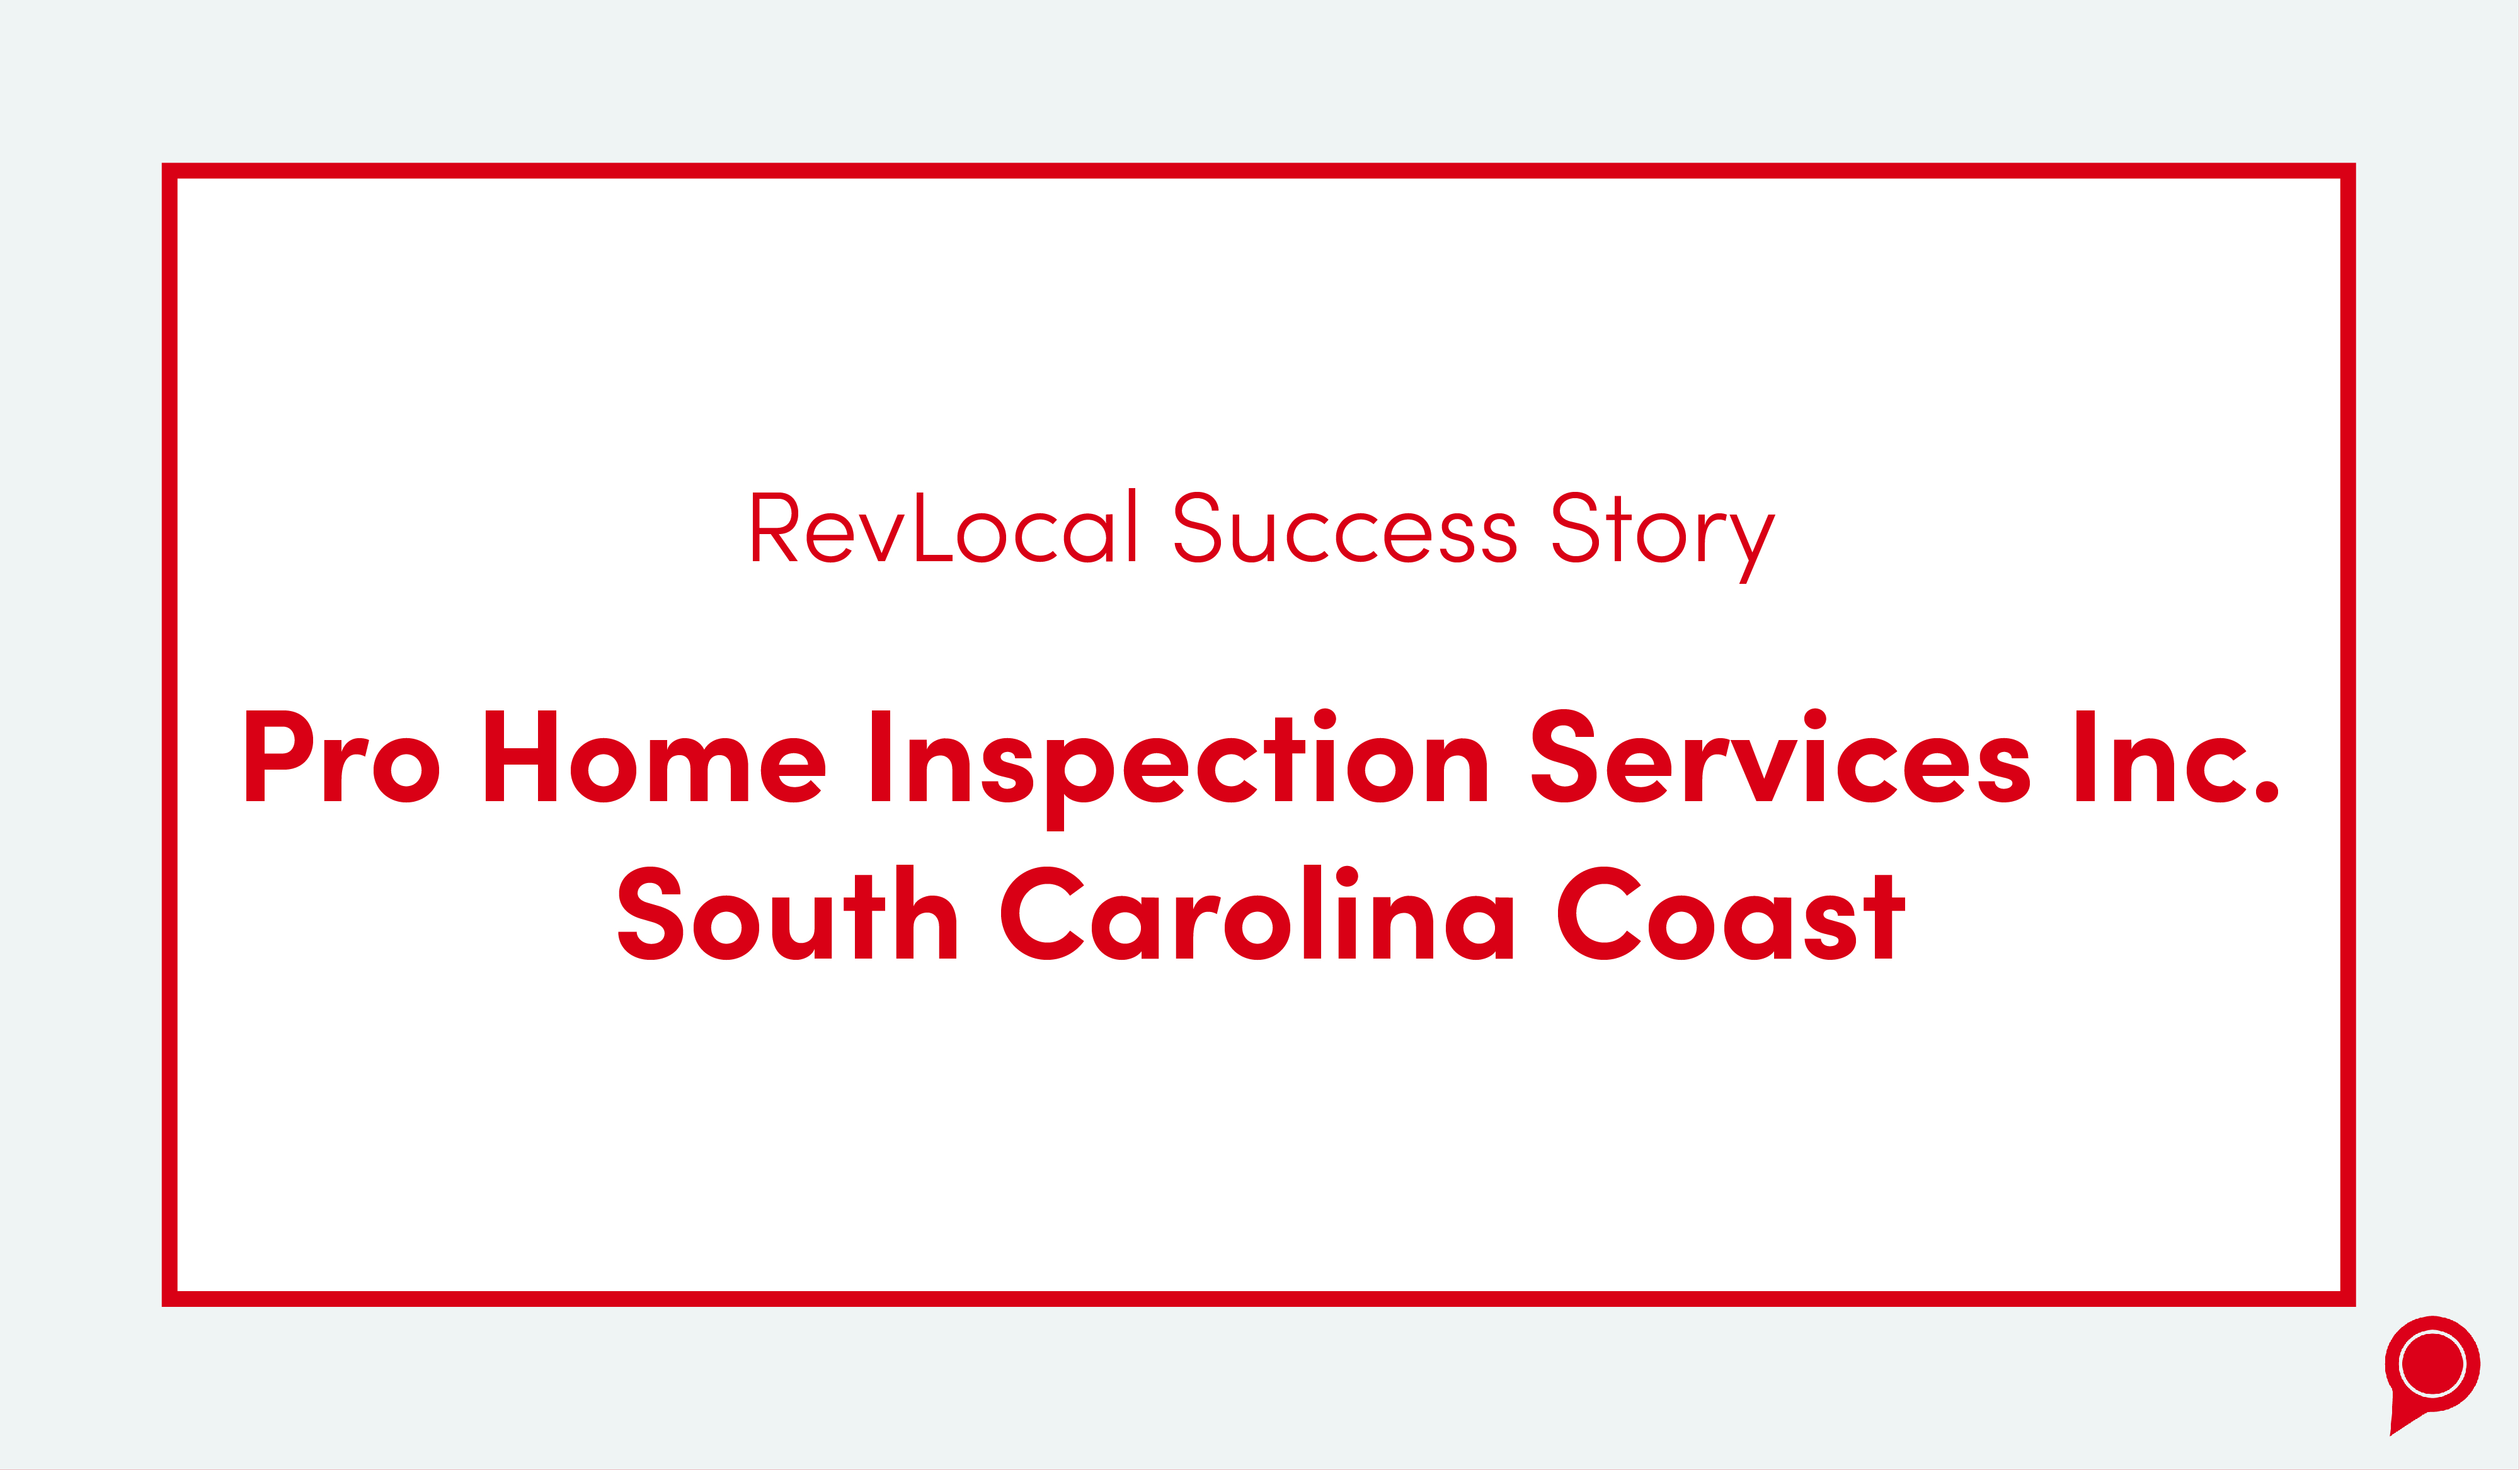 RevLocal success story Pro Home Inspection Services In. South Carolina coast